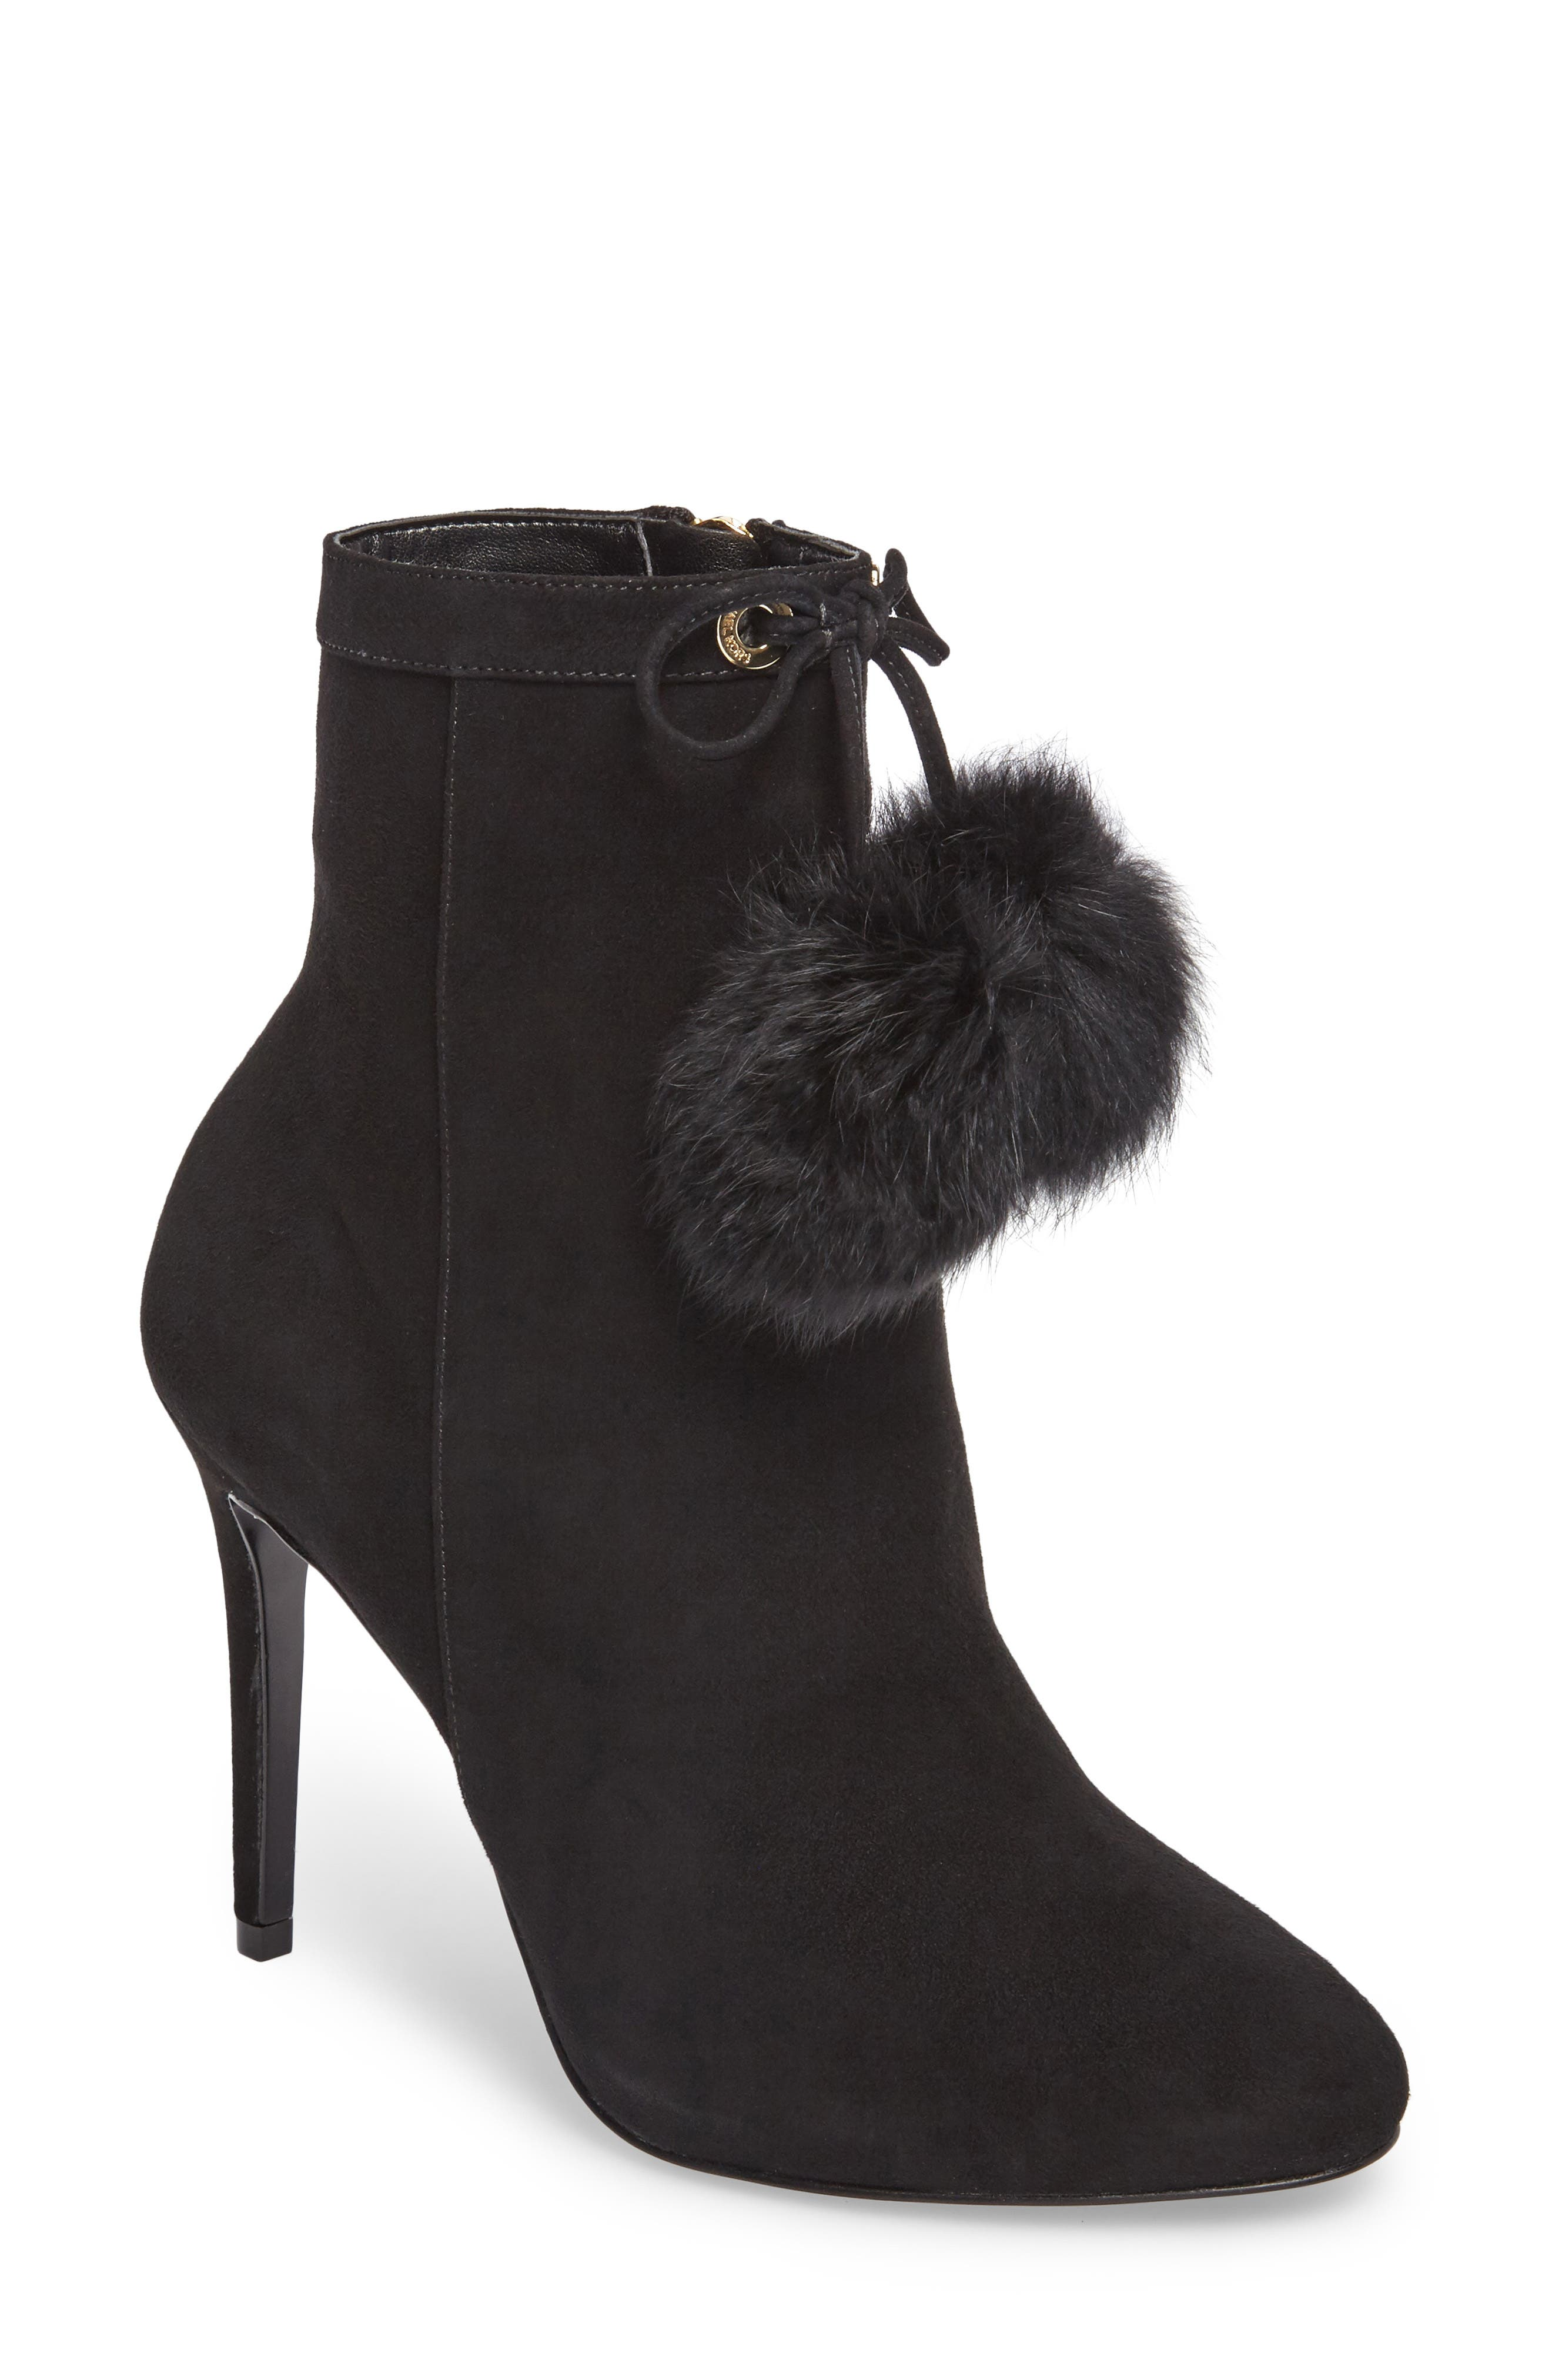 Remi Bootie with Genuine Rabbit Fur Pom,                             Main thumbnail 1, color,                             002